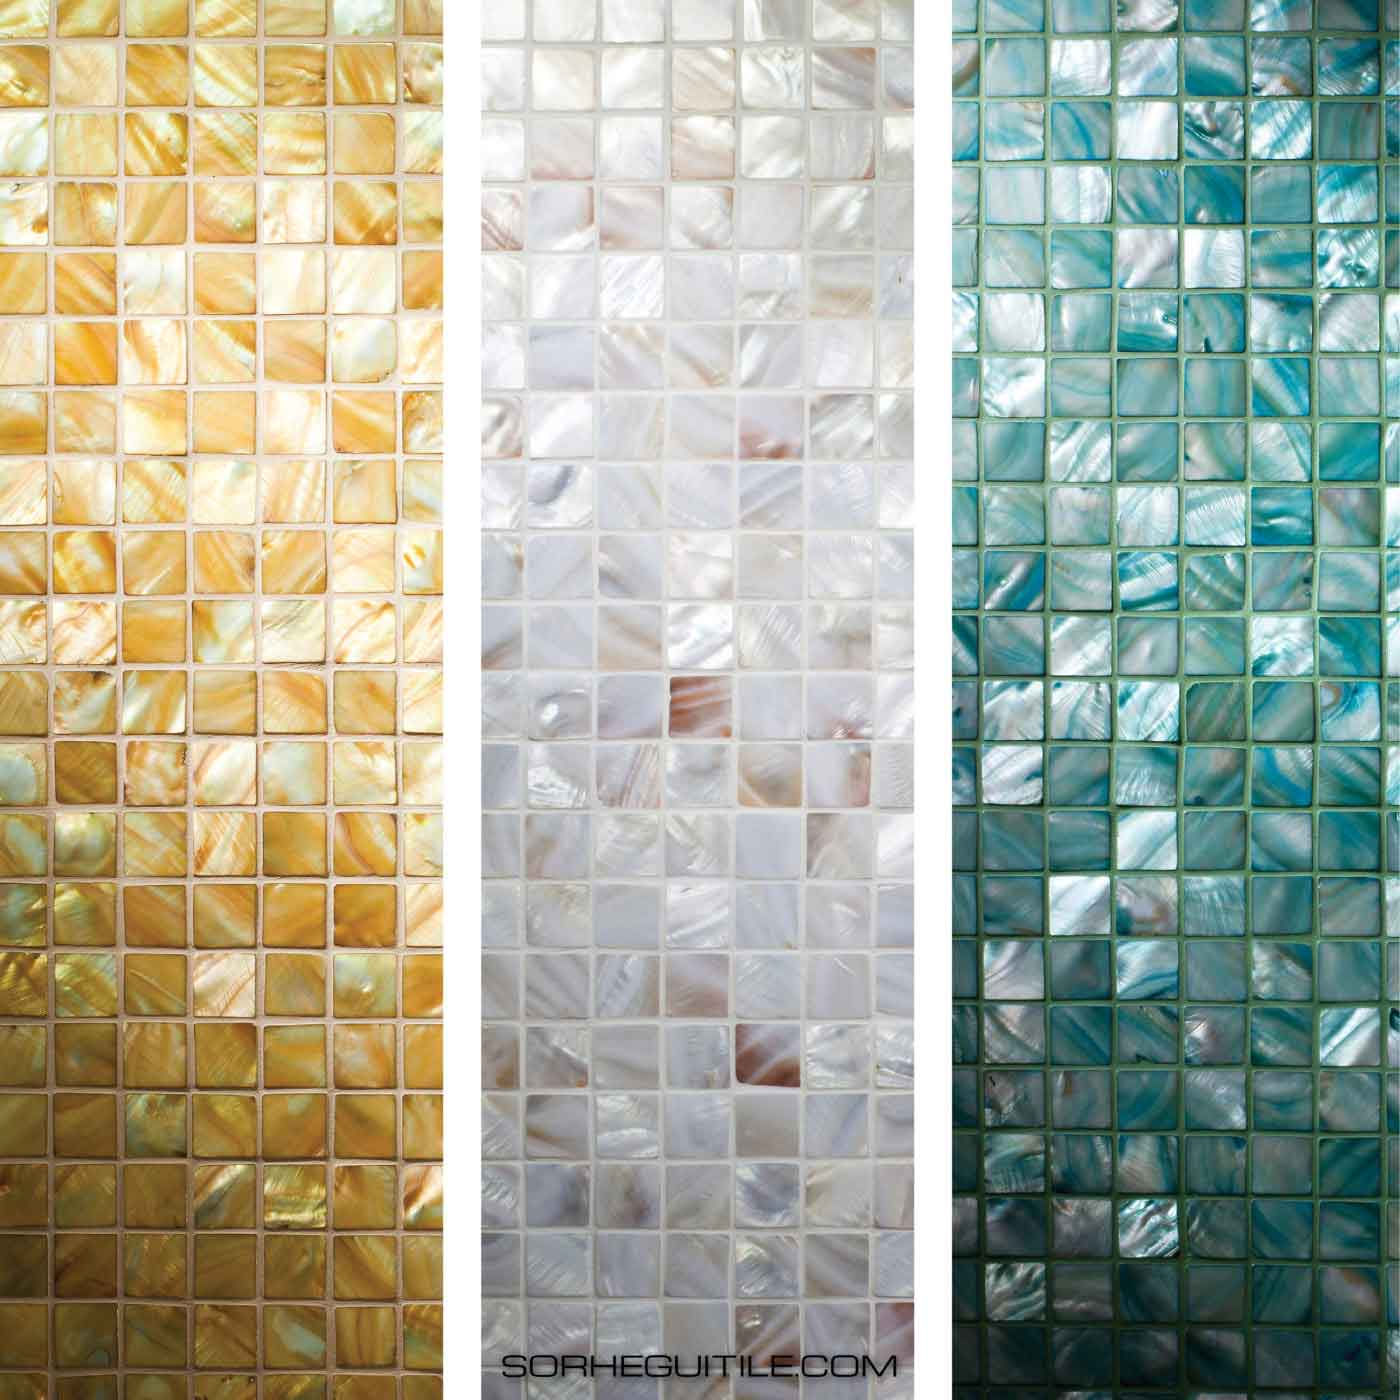 Samples of available Siminetti Mother of Pearl Luxury Pearl Mosaics available at Ruben Sorhegui Tile Distributors in Southwest Florida